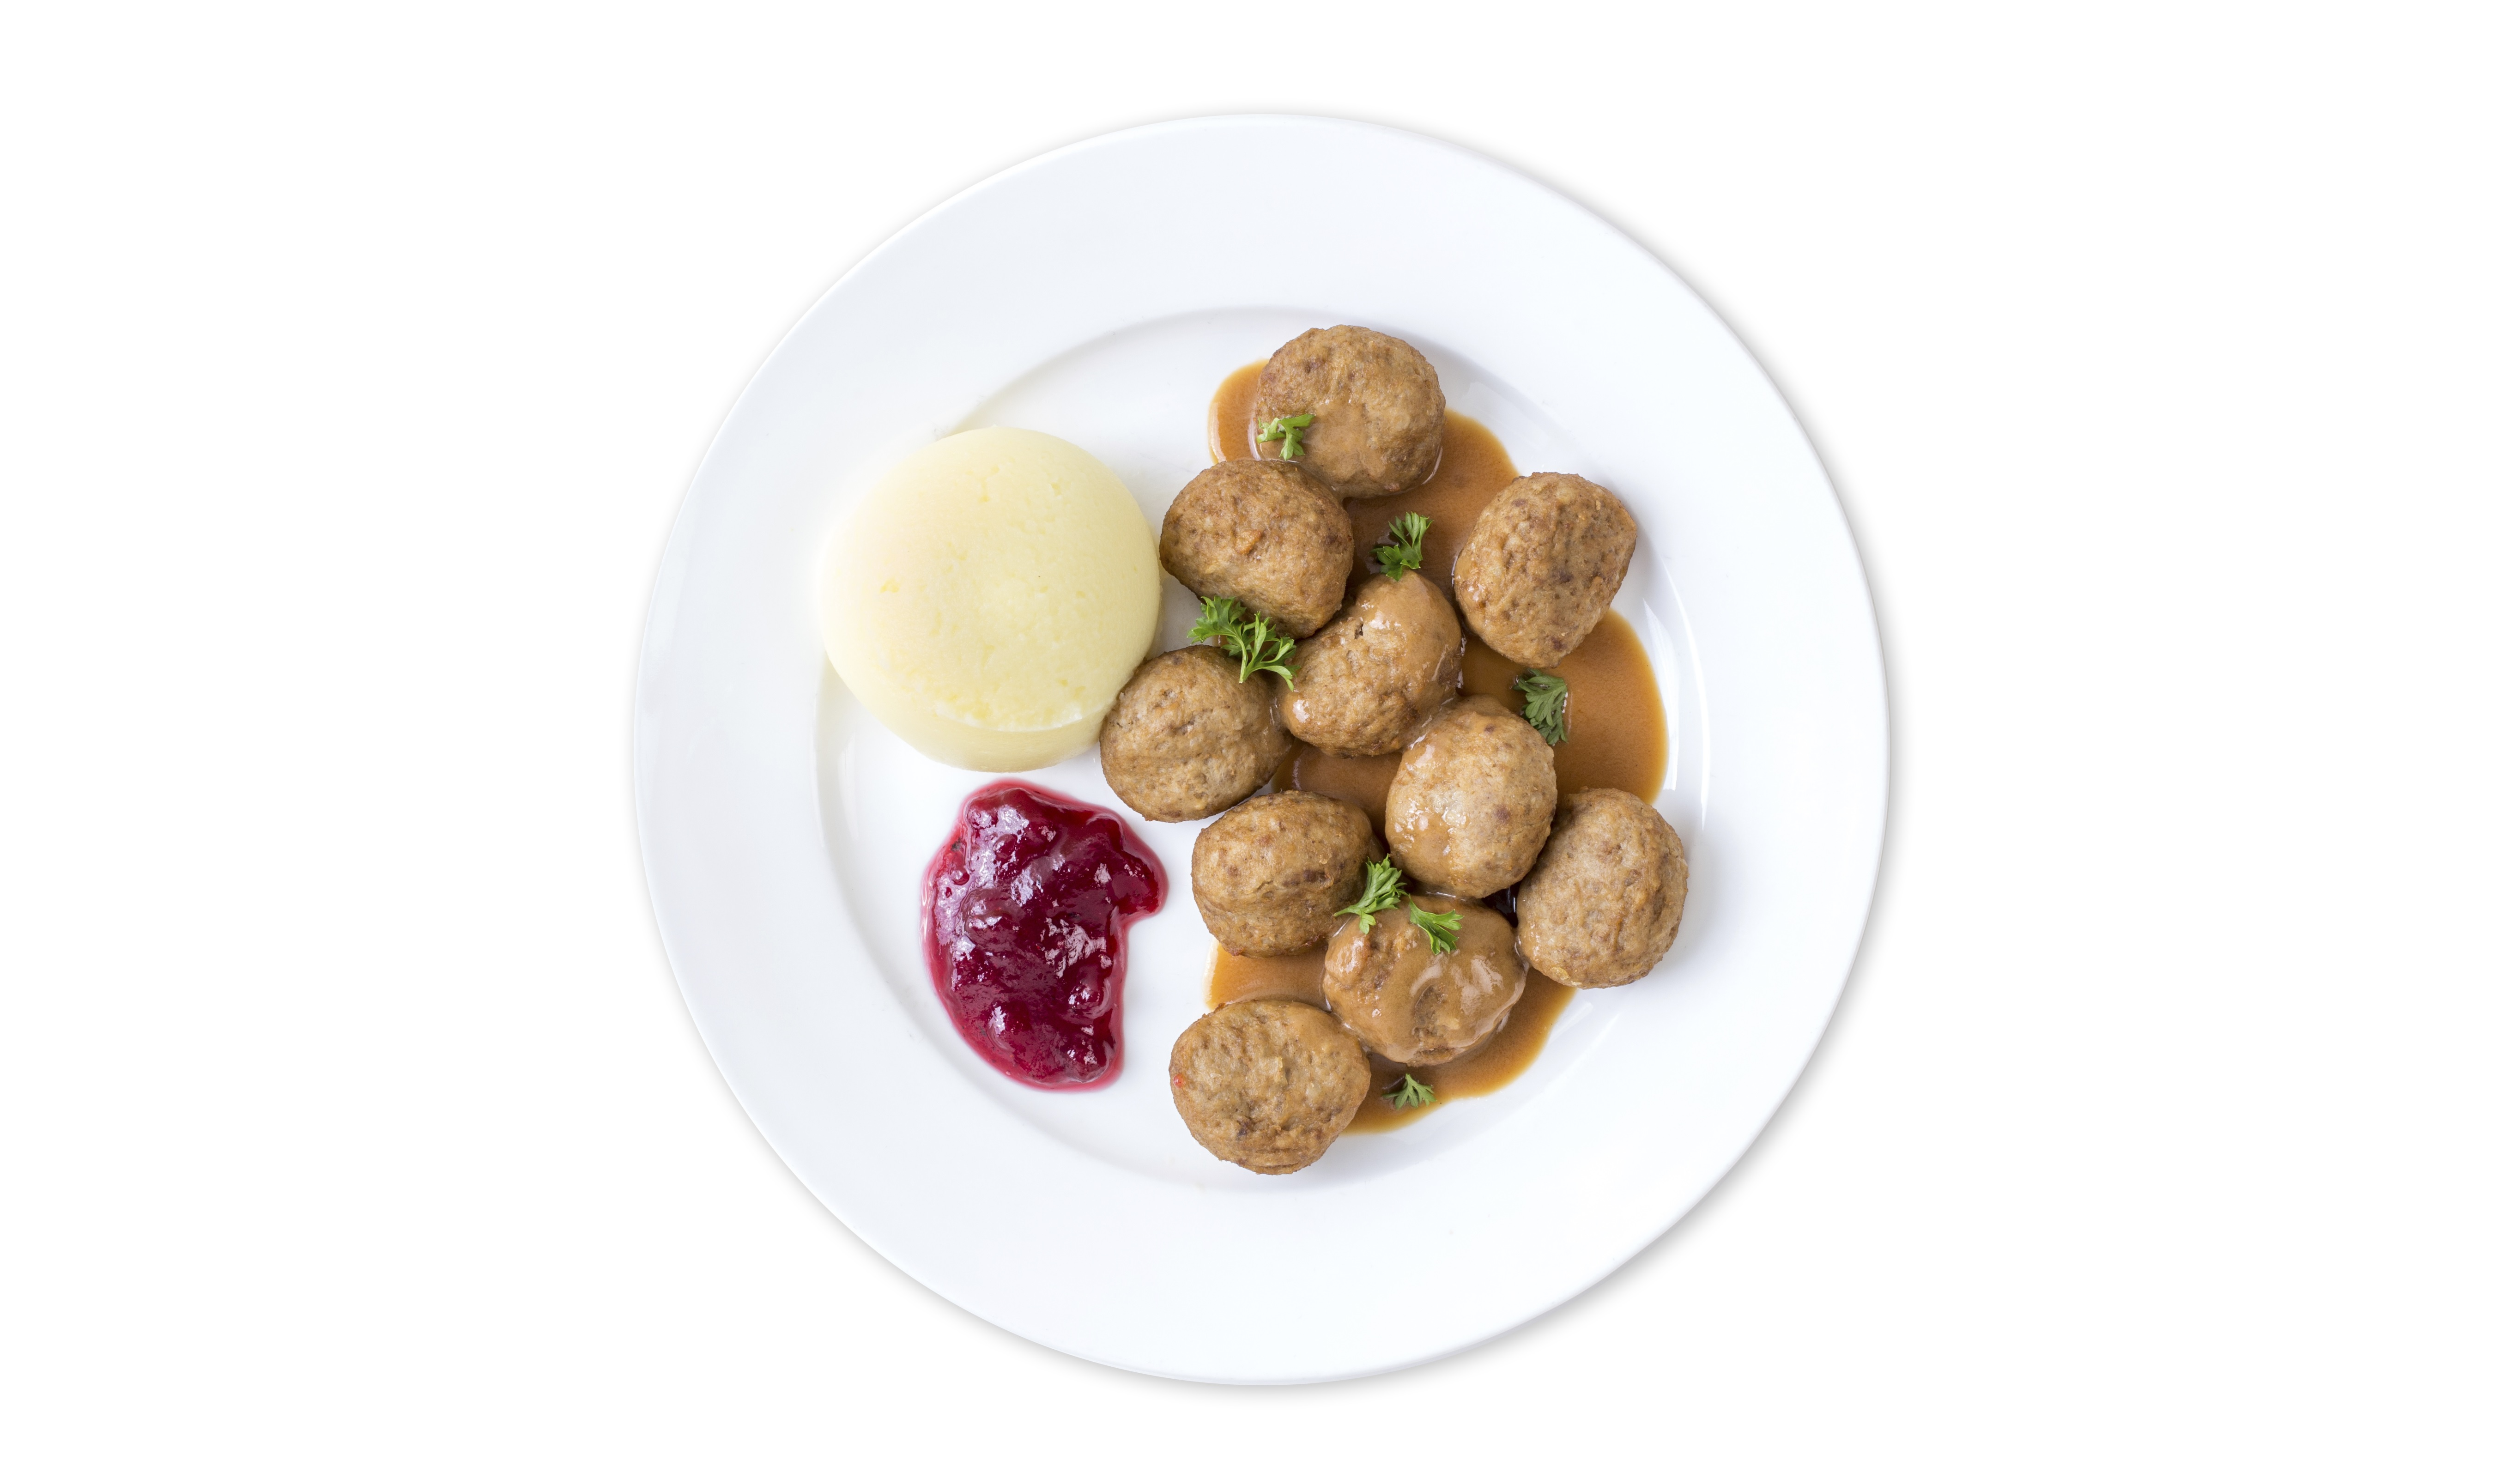 See our IKEA Restaurant menu